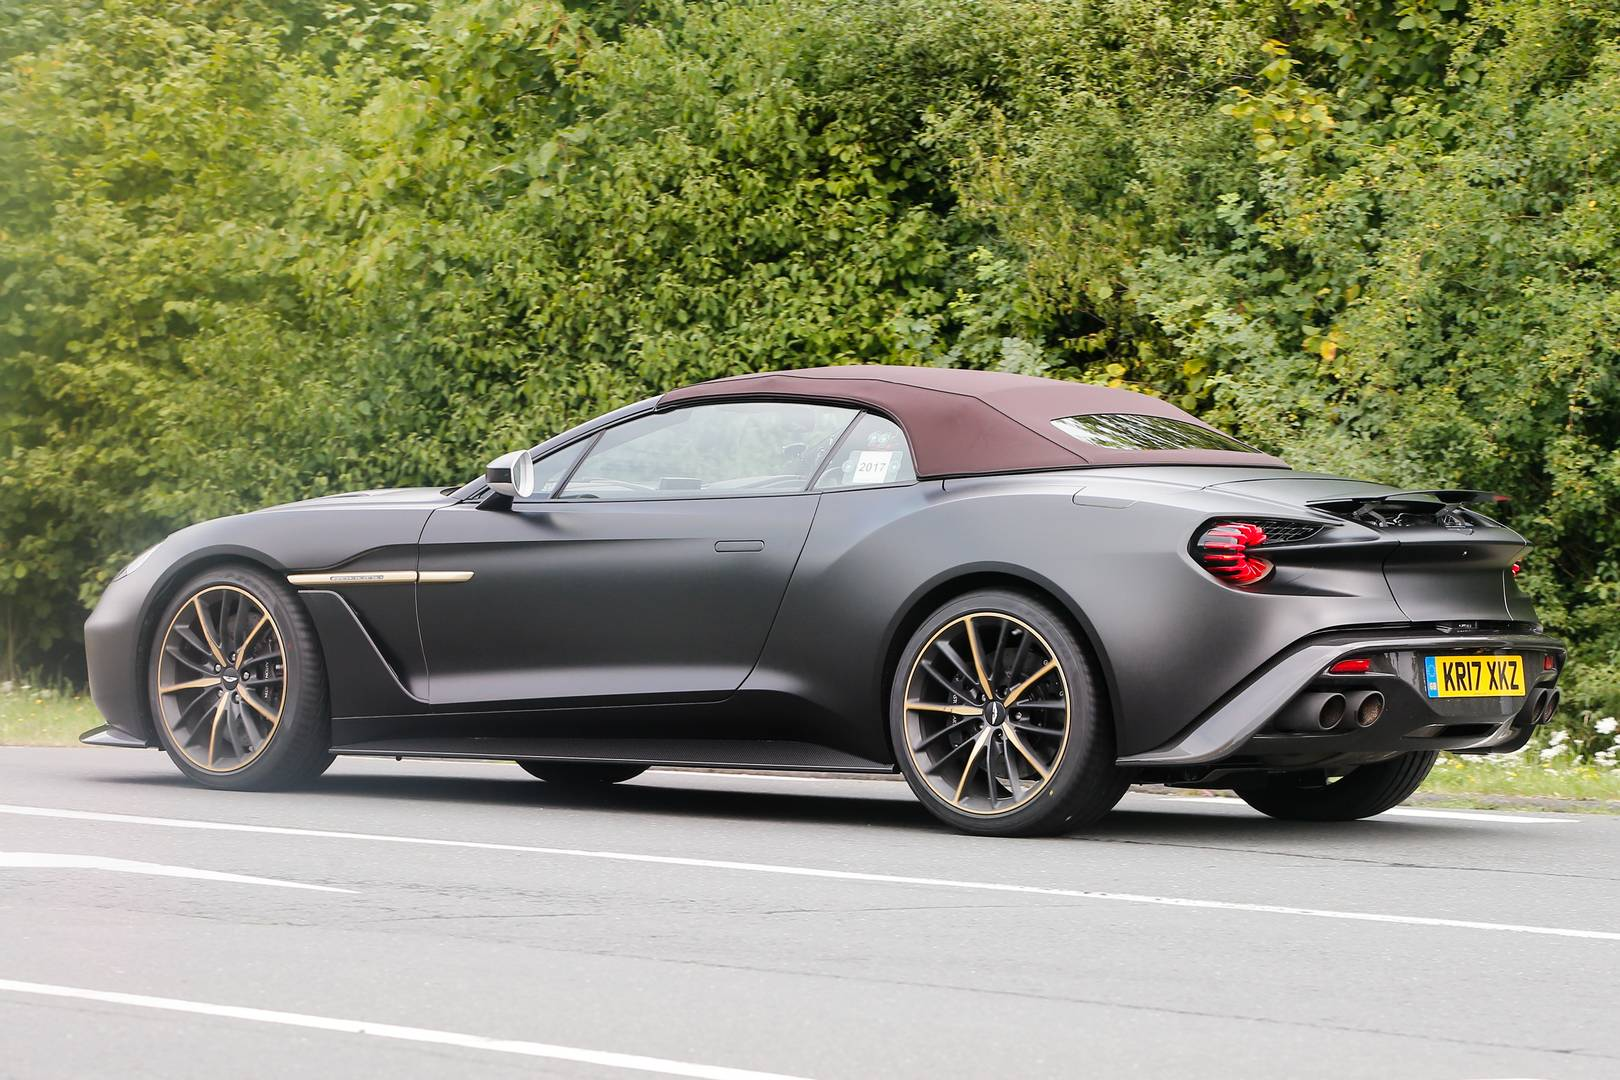 zagato aston martin vanquish volante and speedster spied together gtspirit. Black Bedroom Furniture Sets. Home Design Ideas